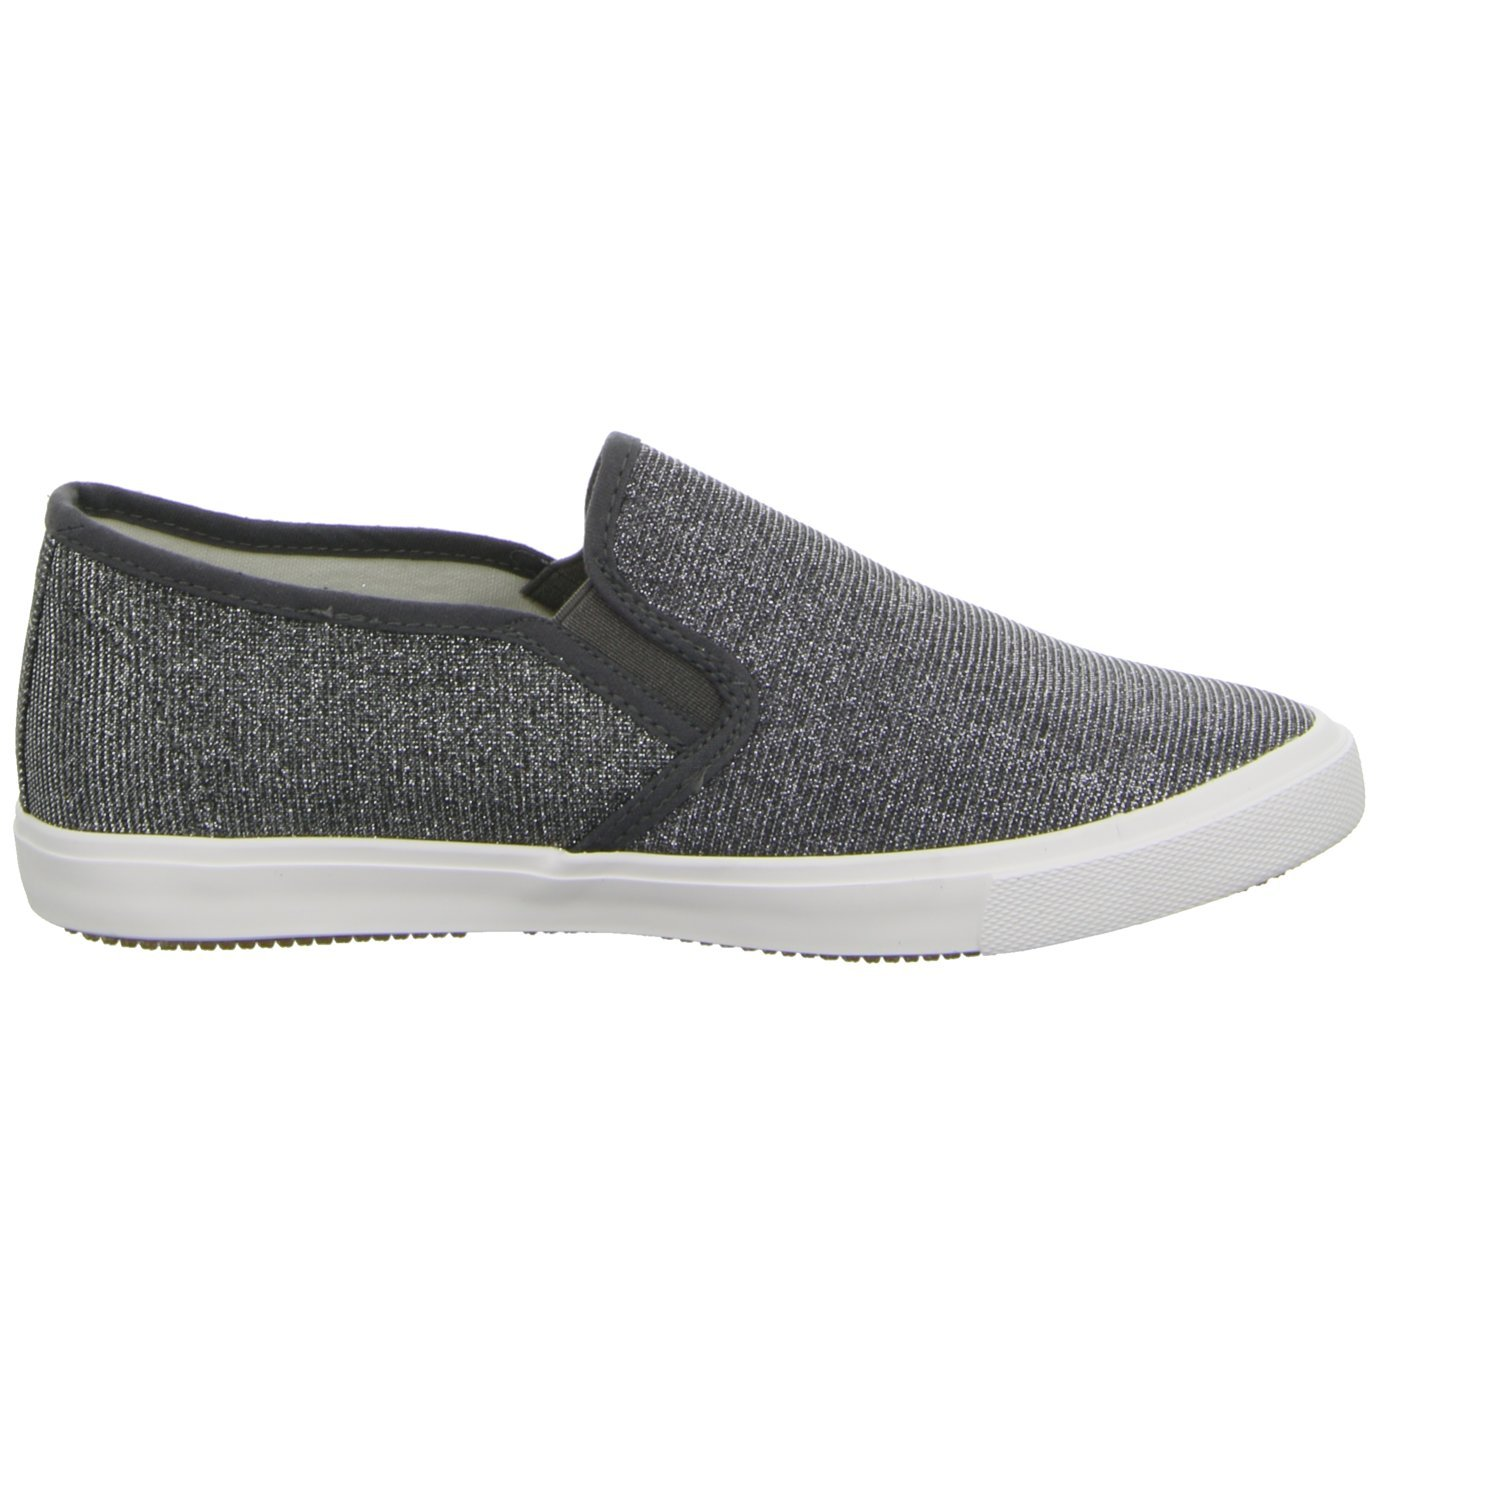 Sneakers VL-001 Damen Slipper Halbschuh